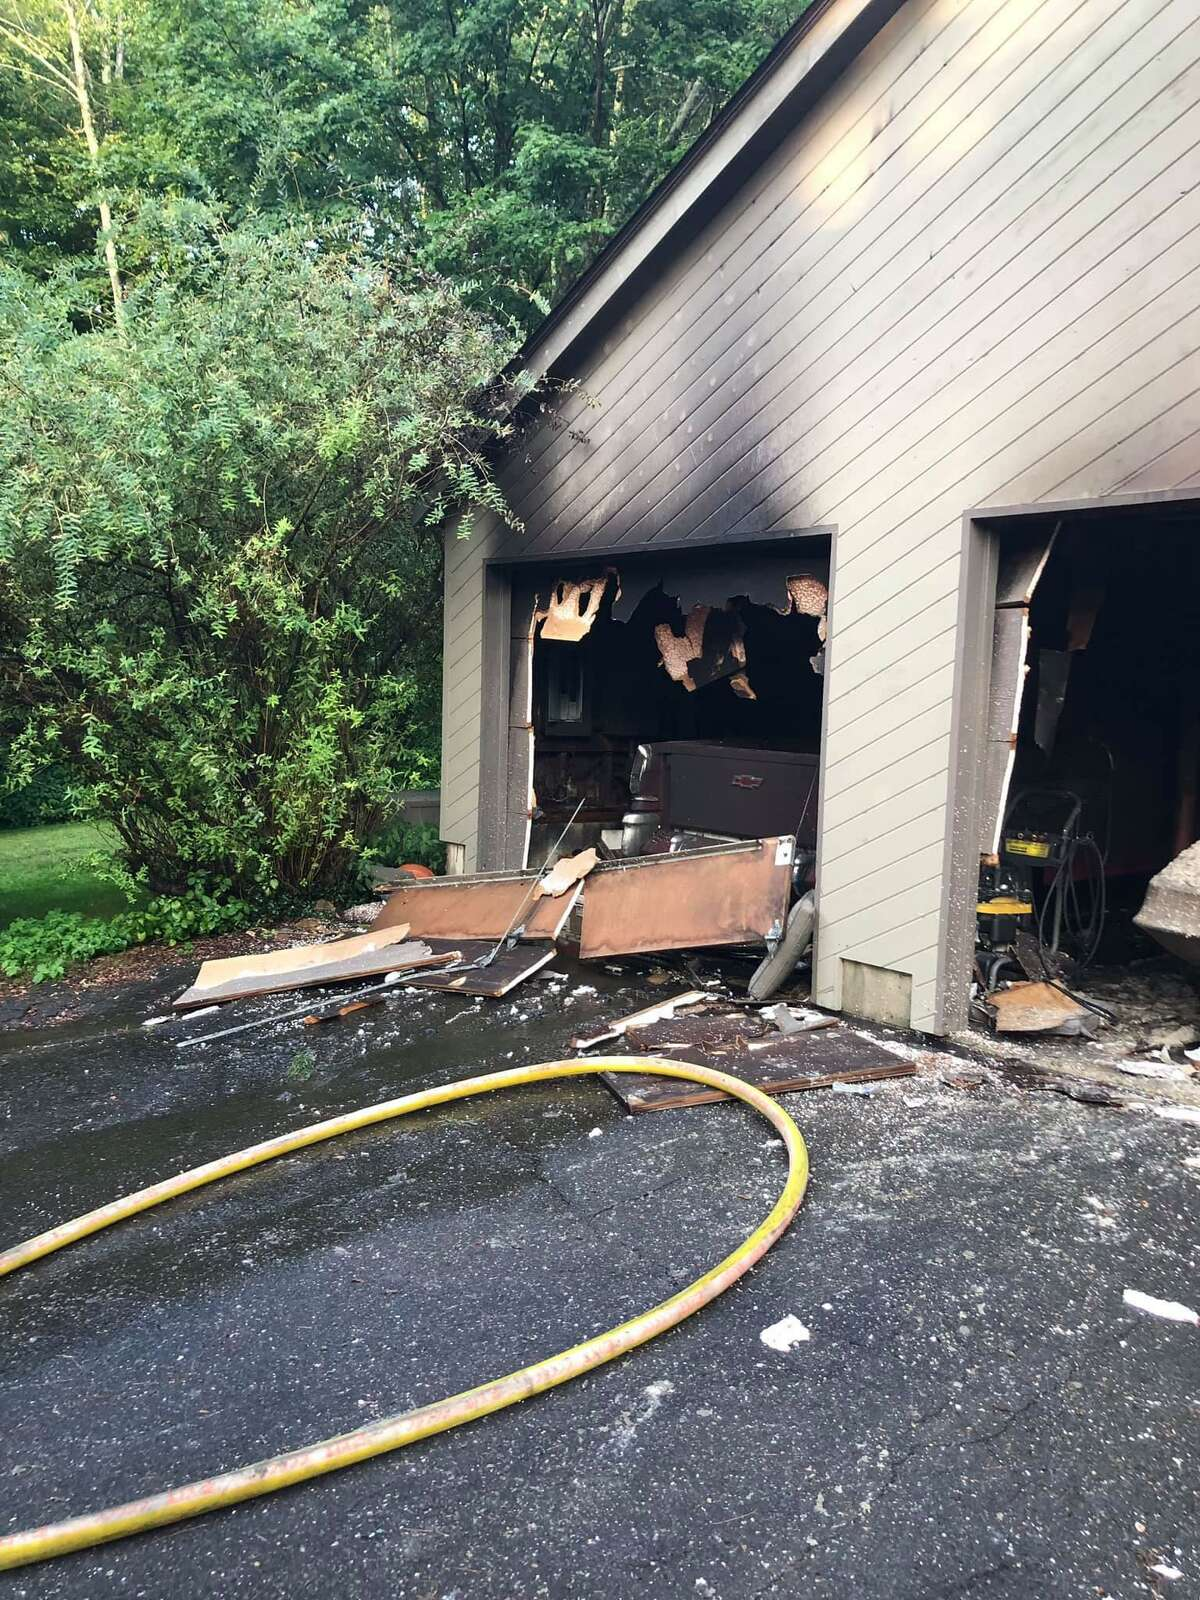 East Haddam firefighters extinguished a blaze on Stockburger Road Saturday, according to the department.